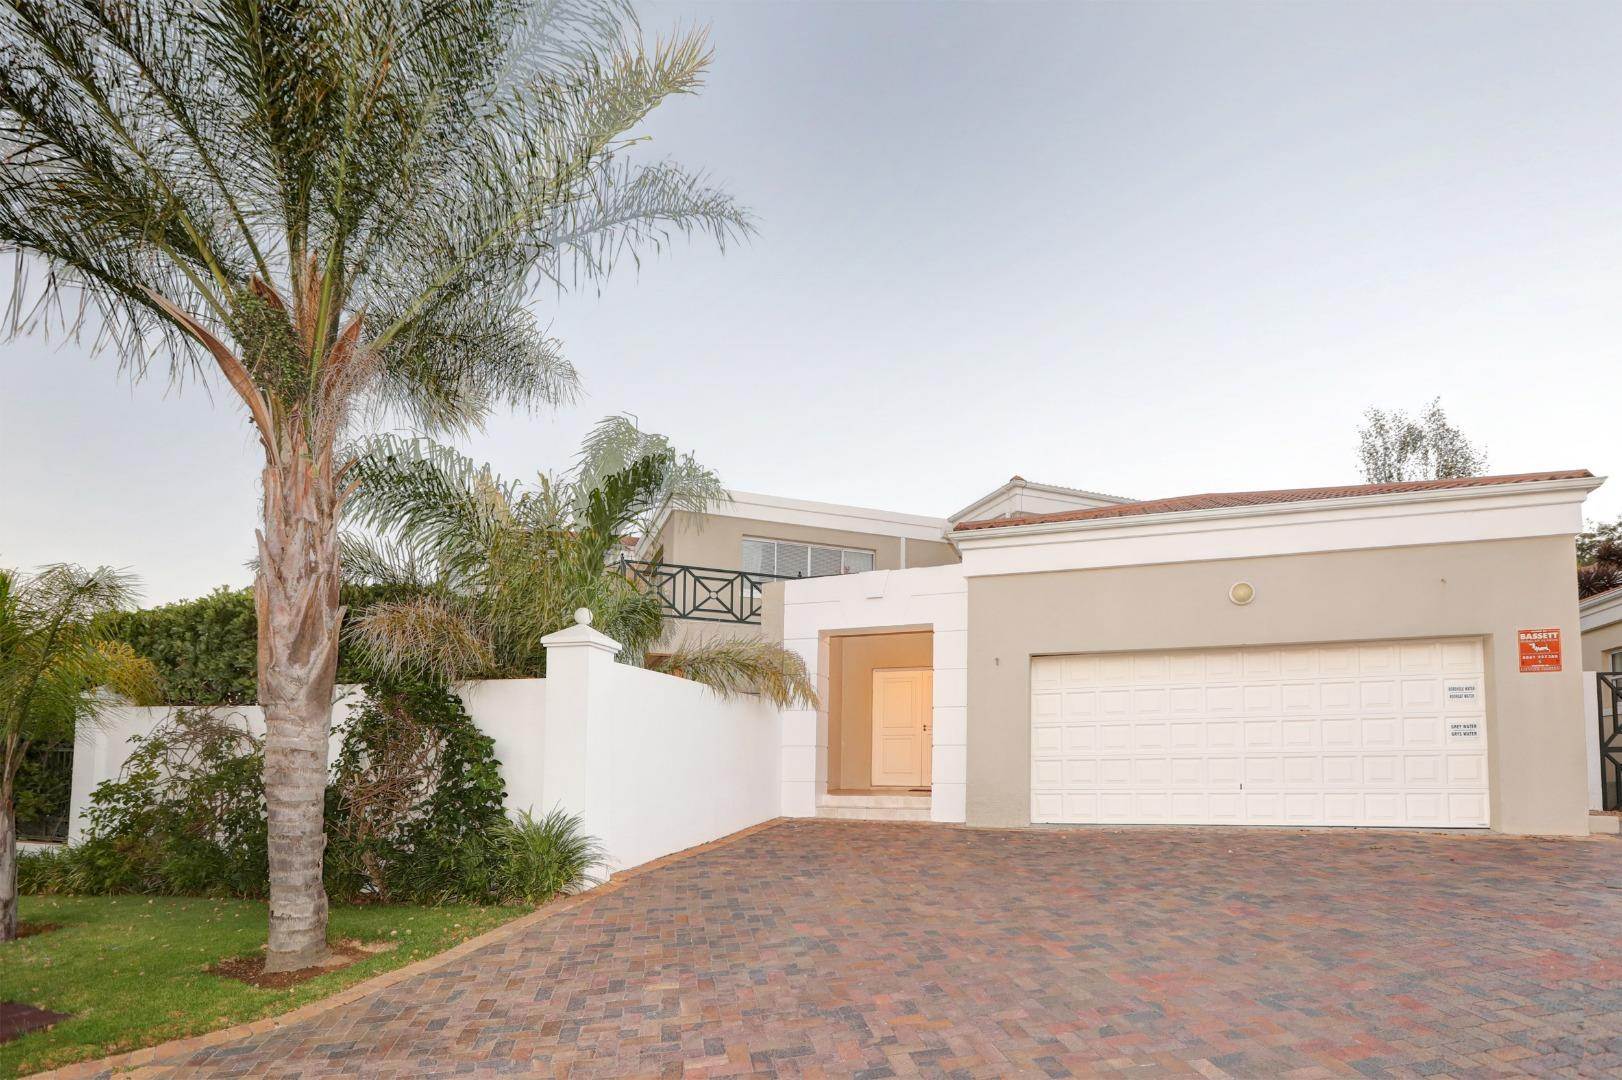 4 Bedroom House for Sale in Eversdal Heights, Durbanville - Western Cape